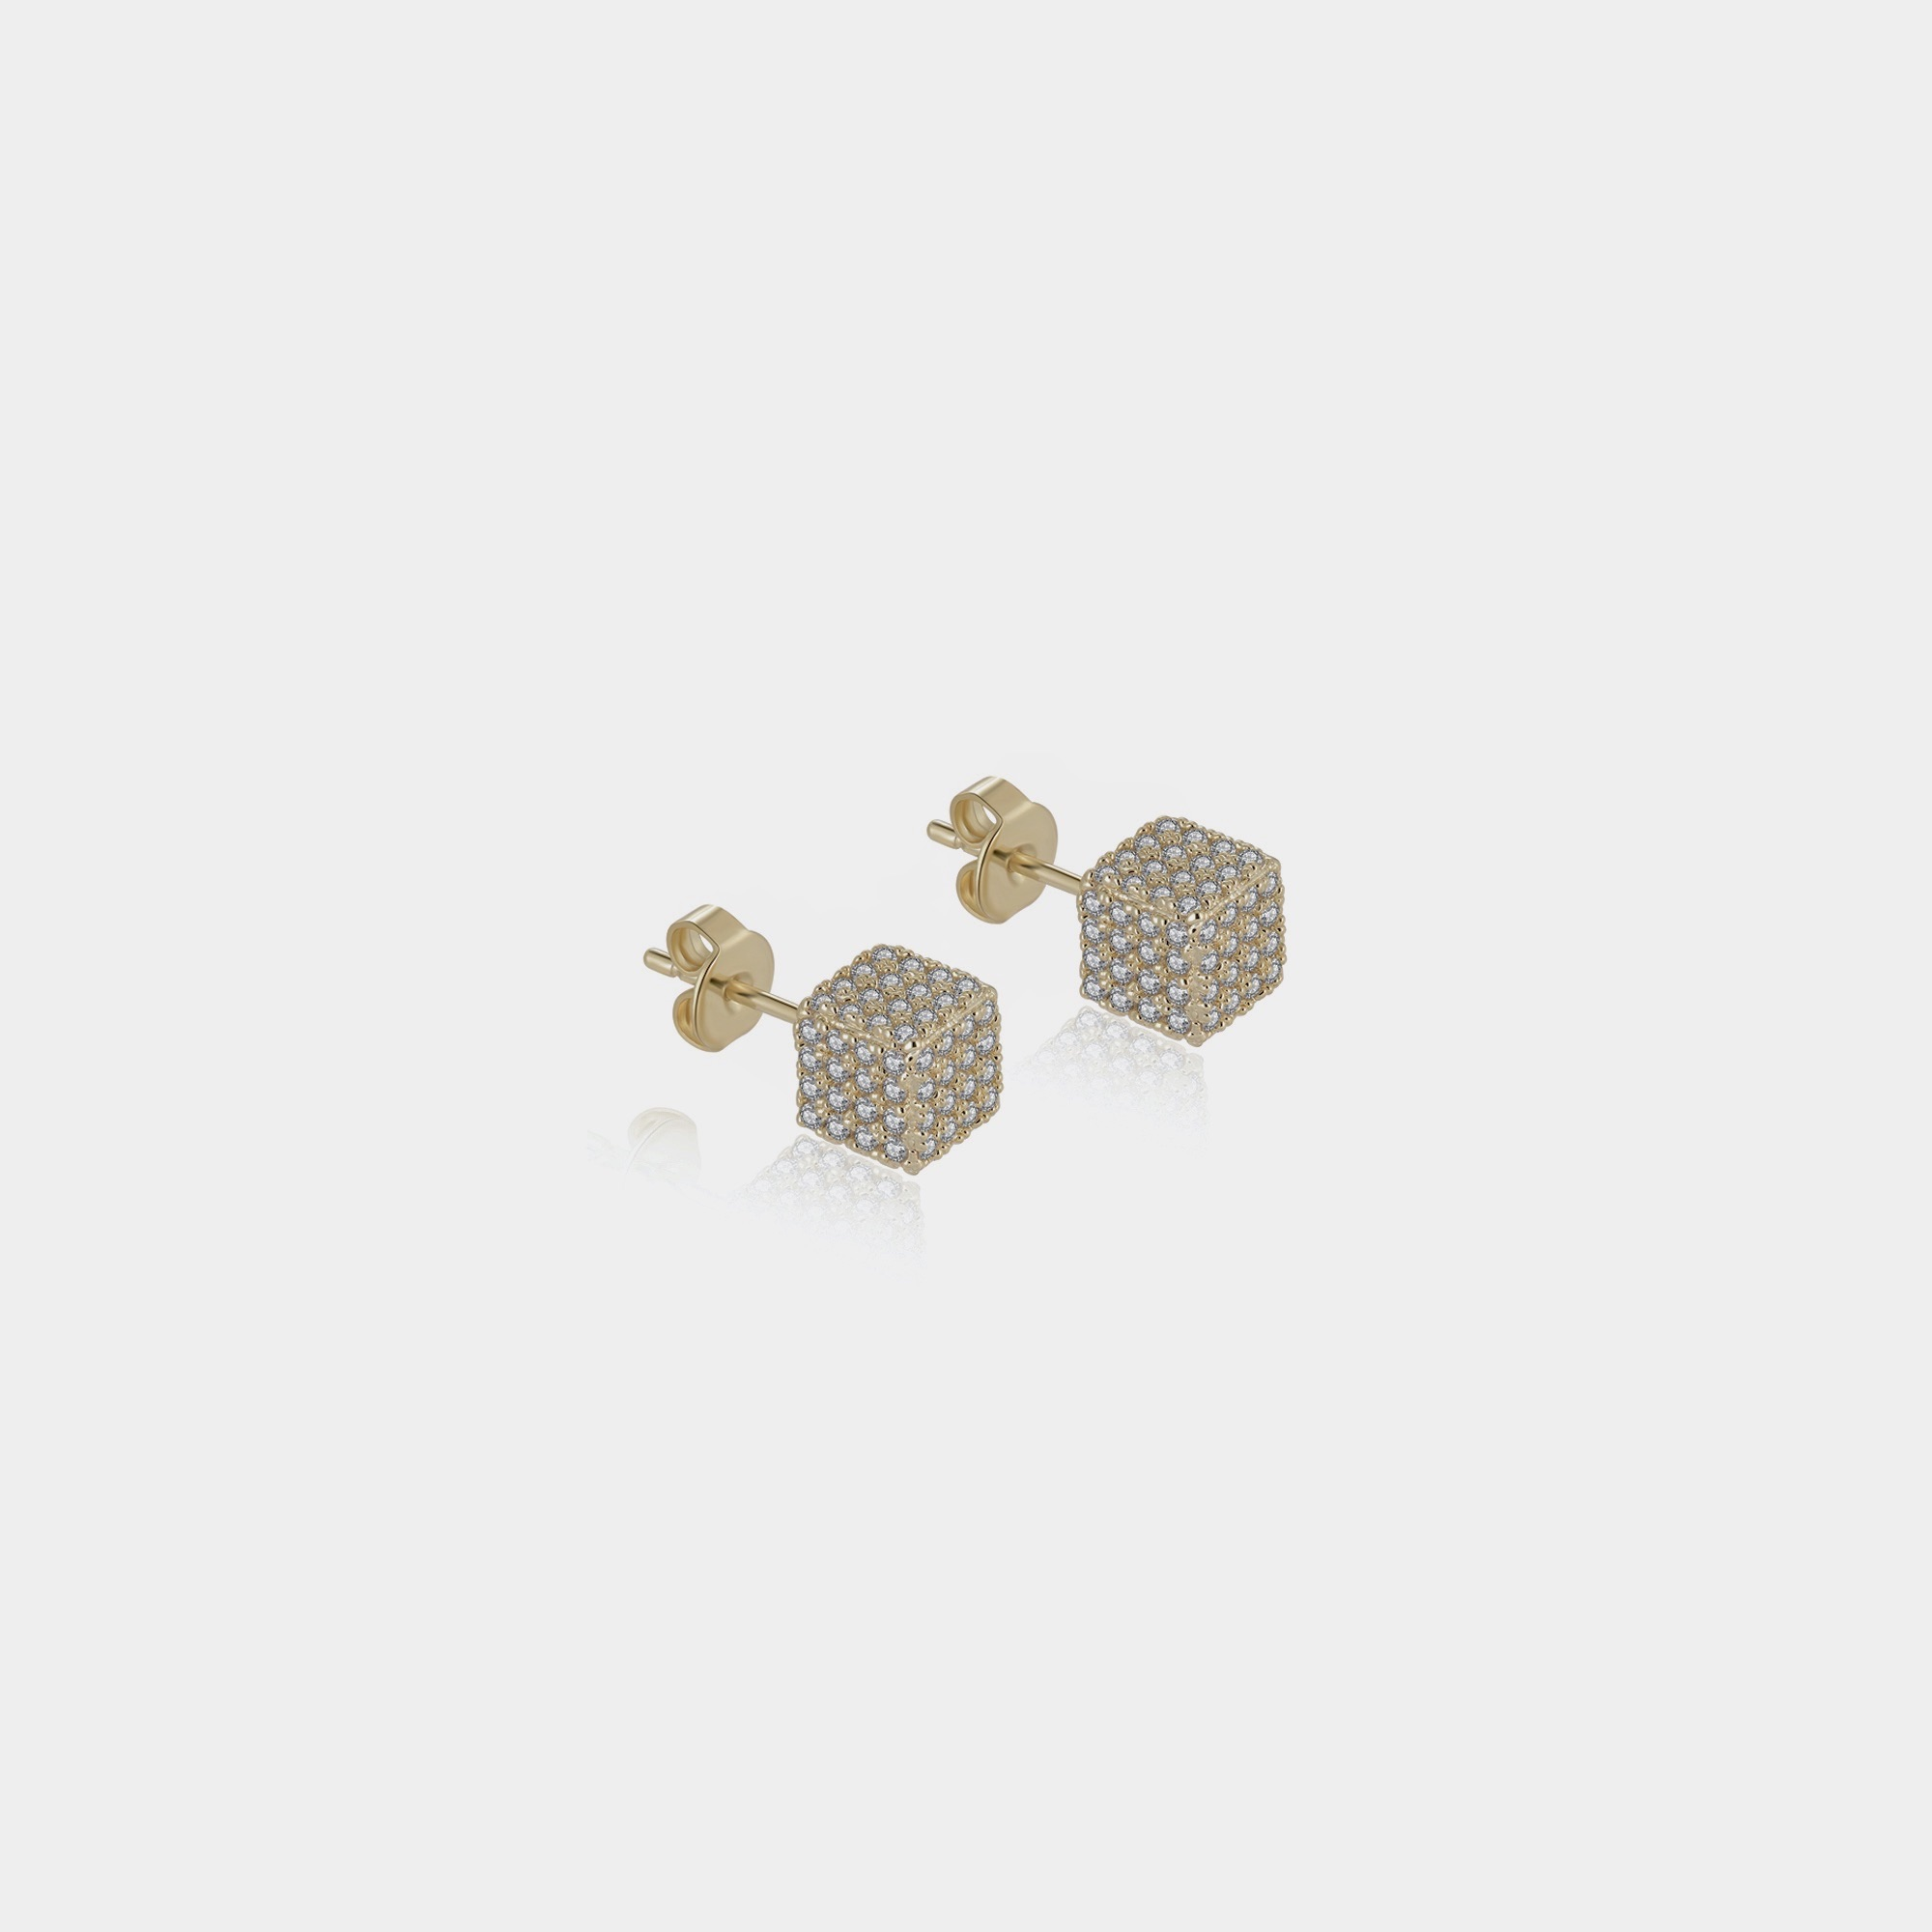 Cuby Earrings - Gold by Emili on curated-crowd.com